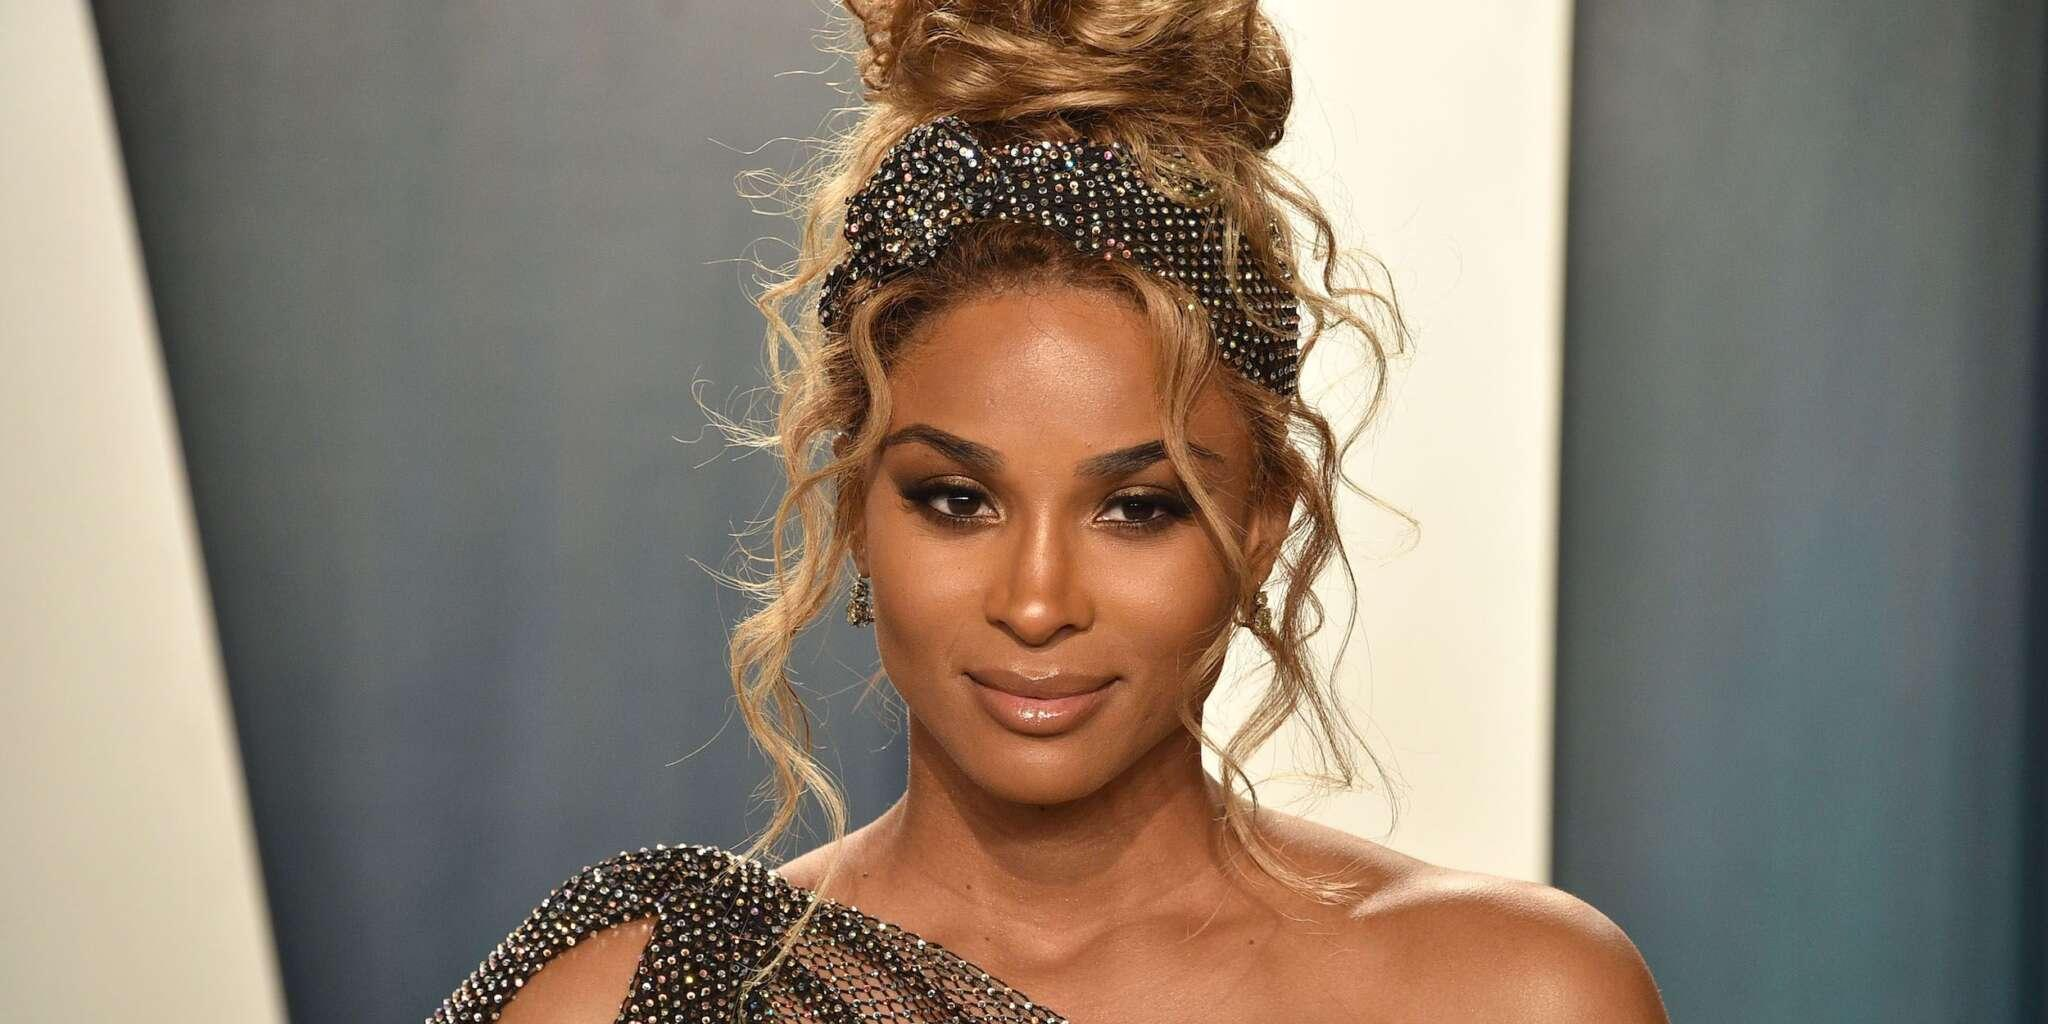 Ciara Reveals She Is 18 Pounds Away From Her Ideal Weight 7 Months After Welcoming Son Win But Still 'Embracing' Her Curves!